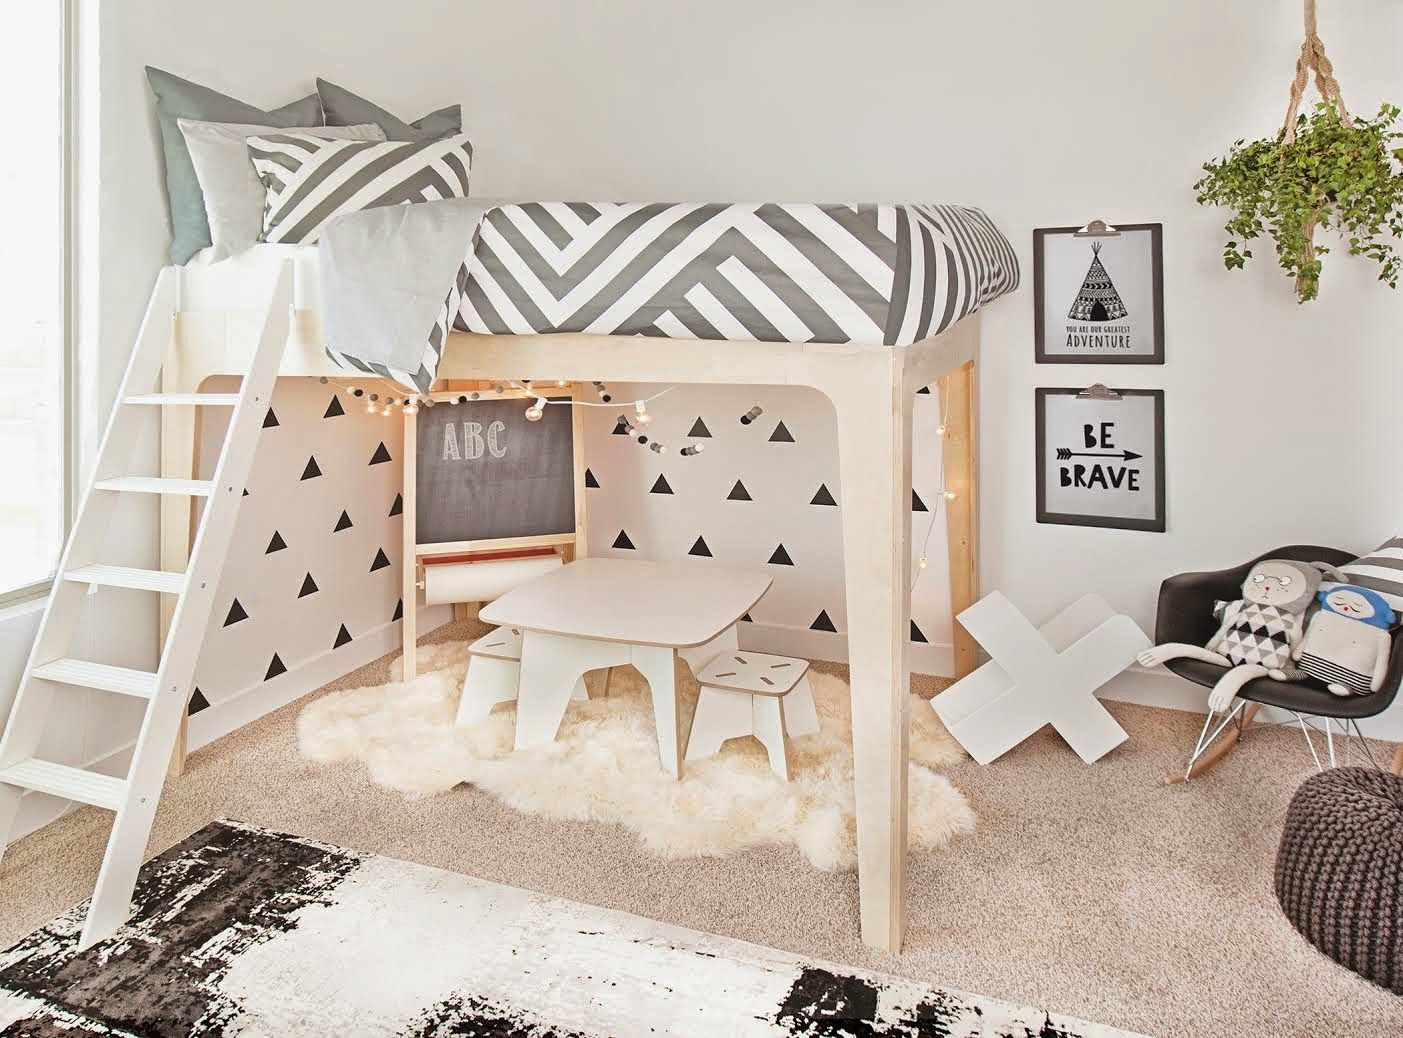 hanes 39 room reveal cara loren sch ne teppiche. Black Bedroom Furniture Sets. Home Design Ideas